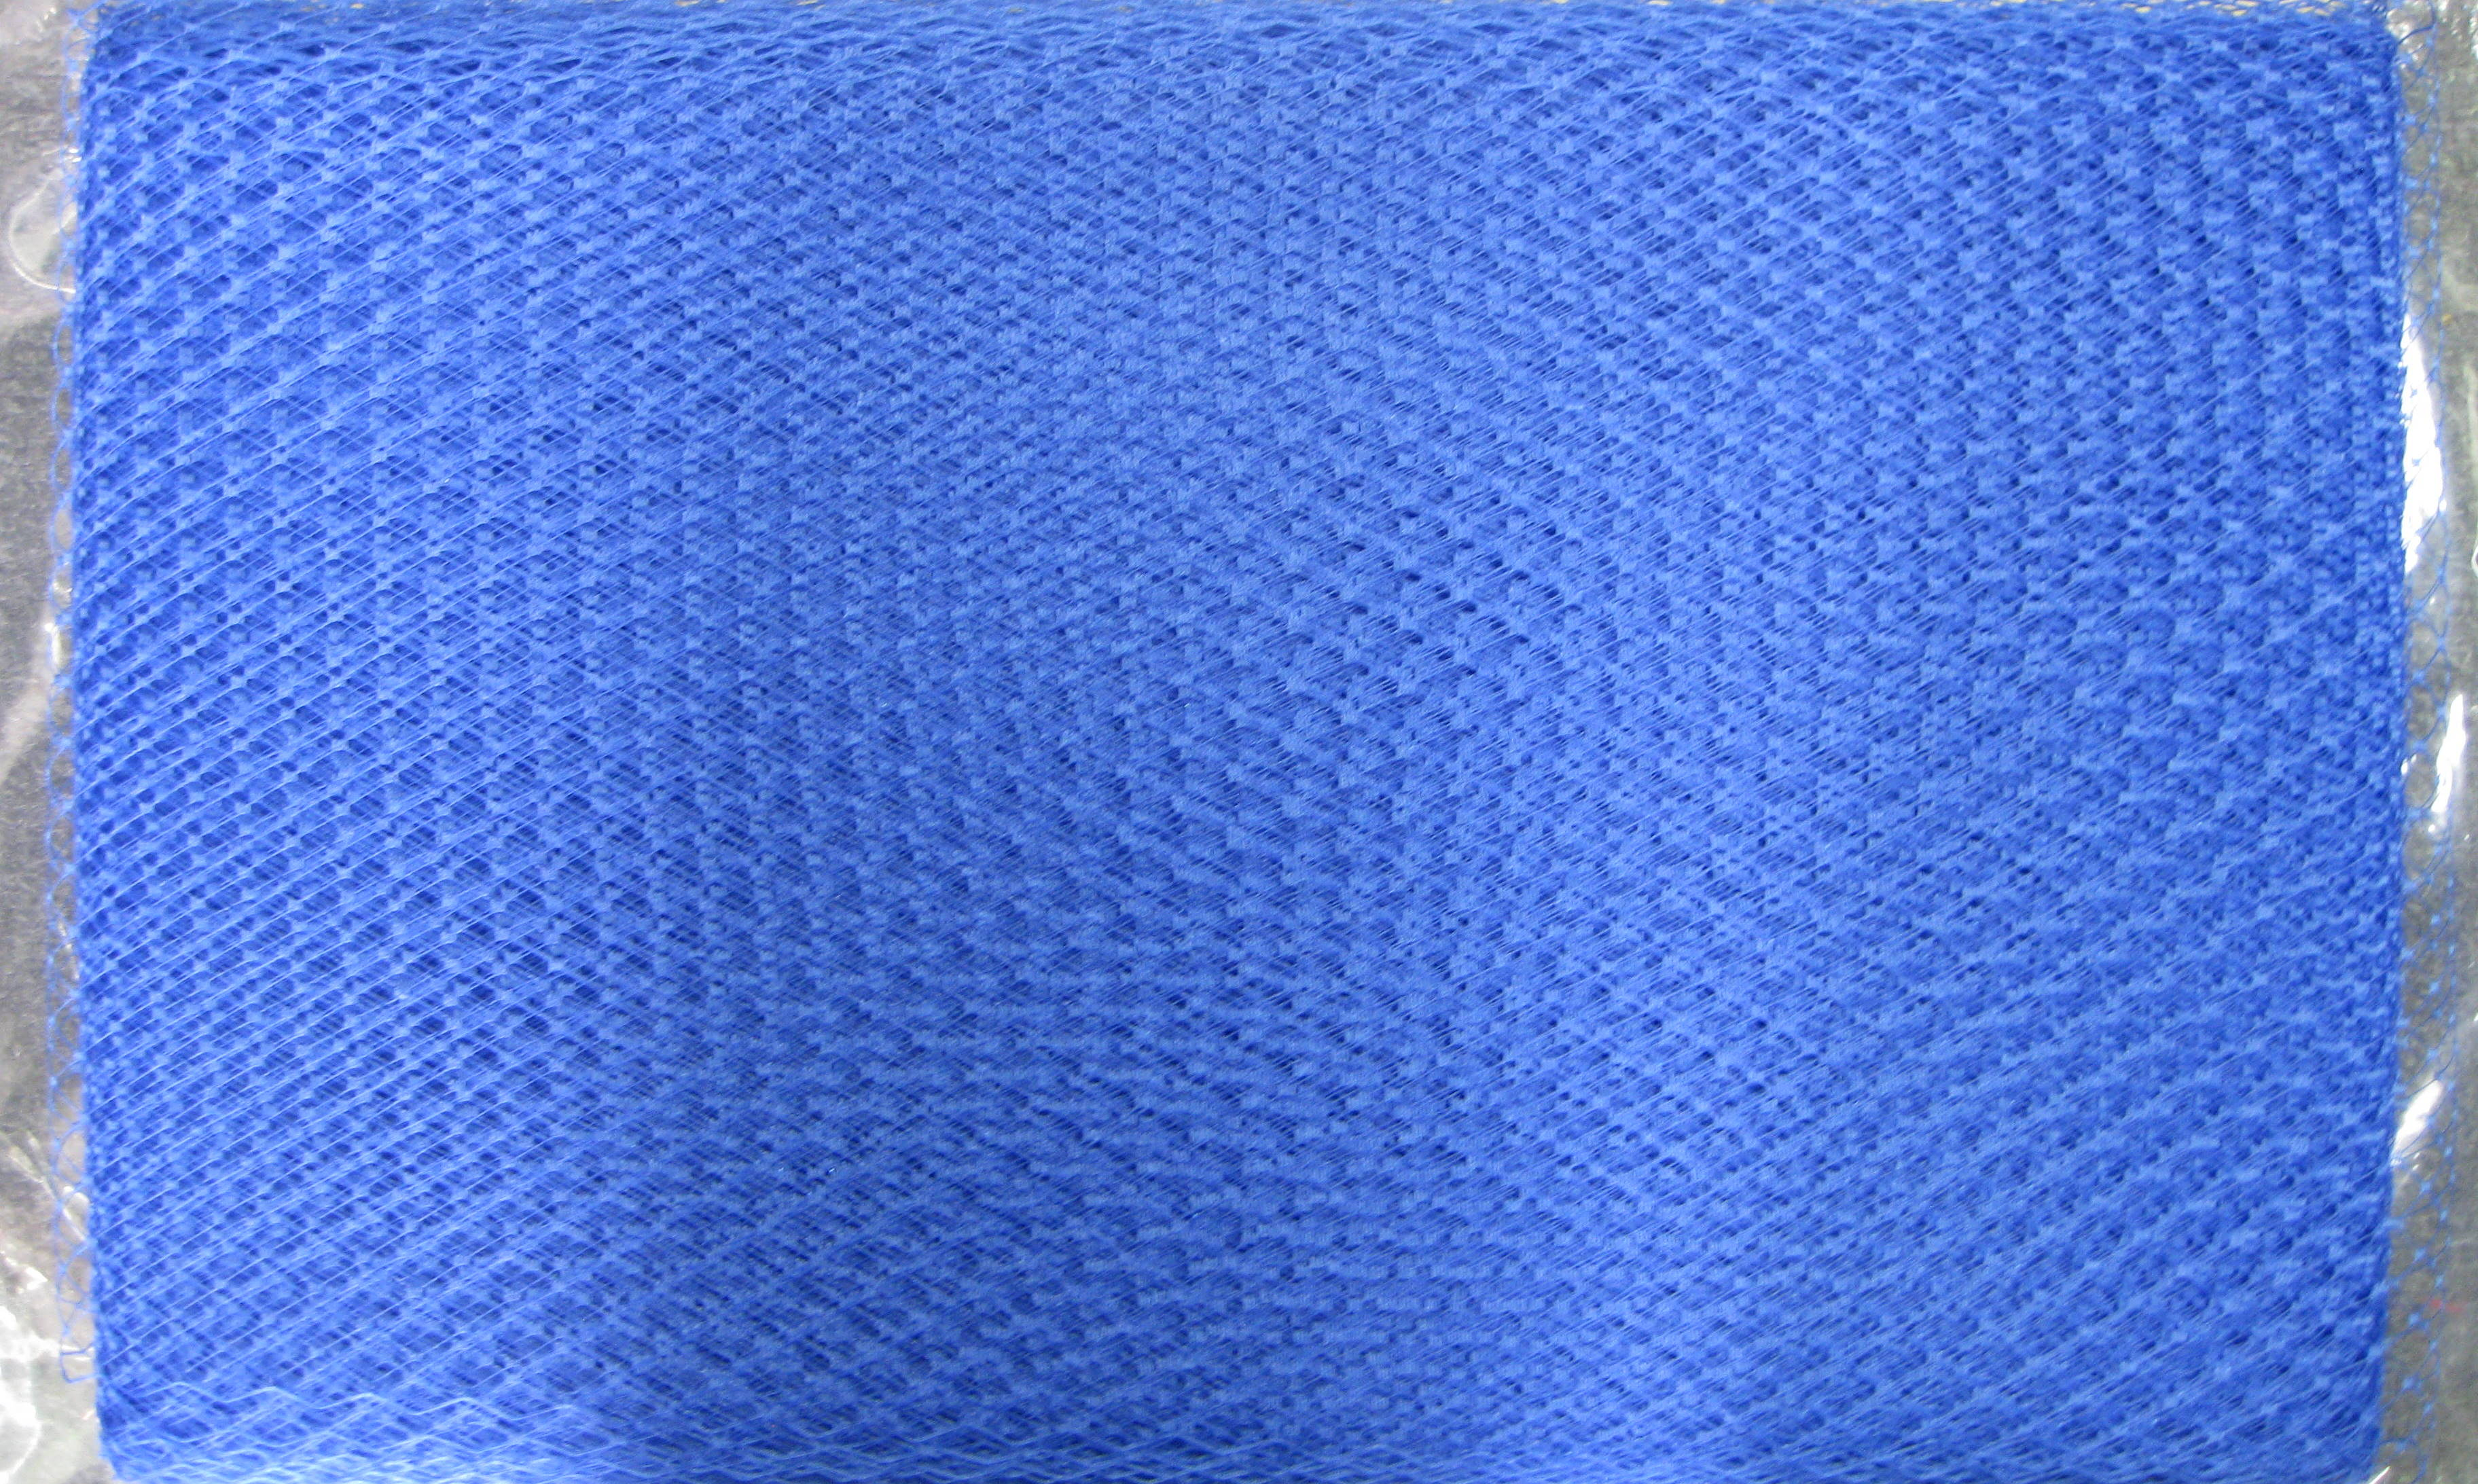 FRENCH NETTING TULLE BLUE